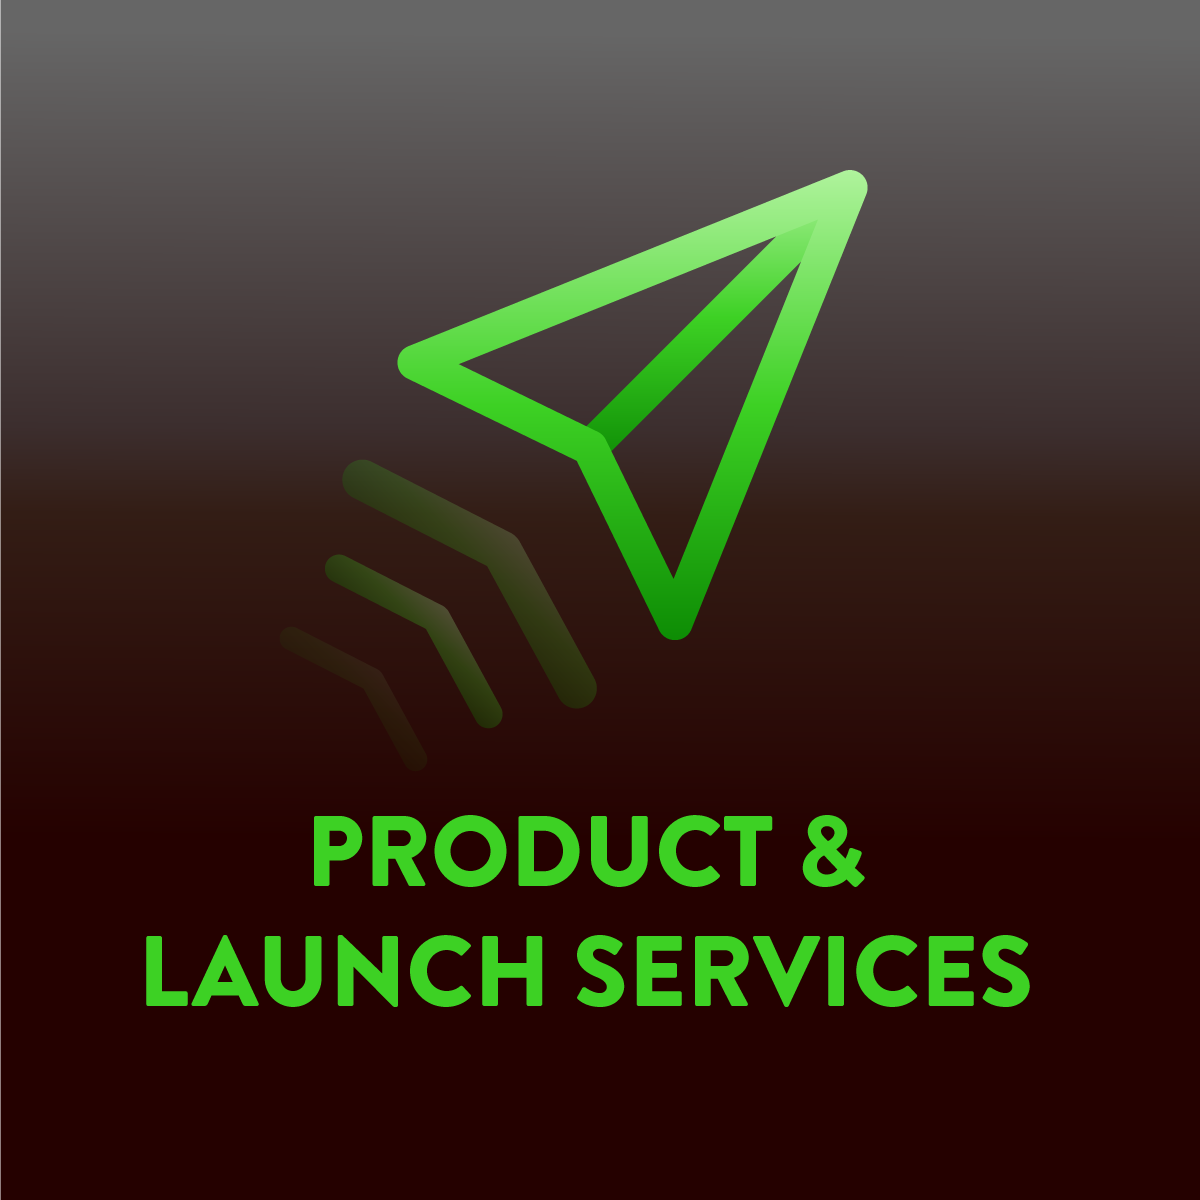 Product Launches, New Service marketing and go-to-market marketing support